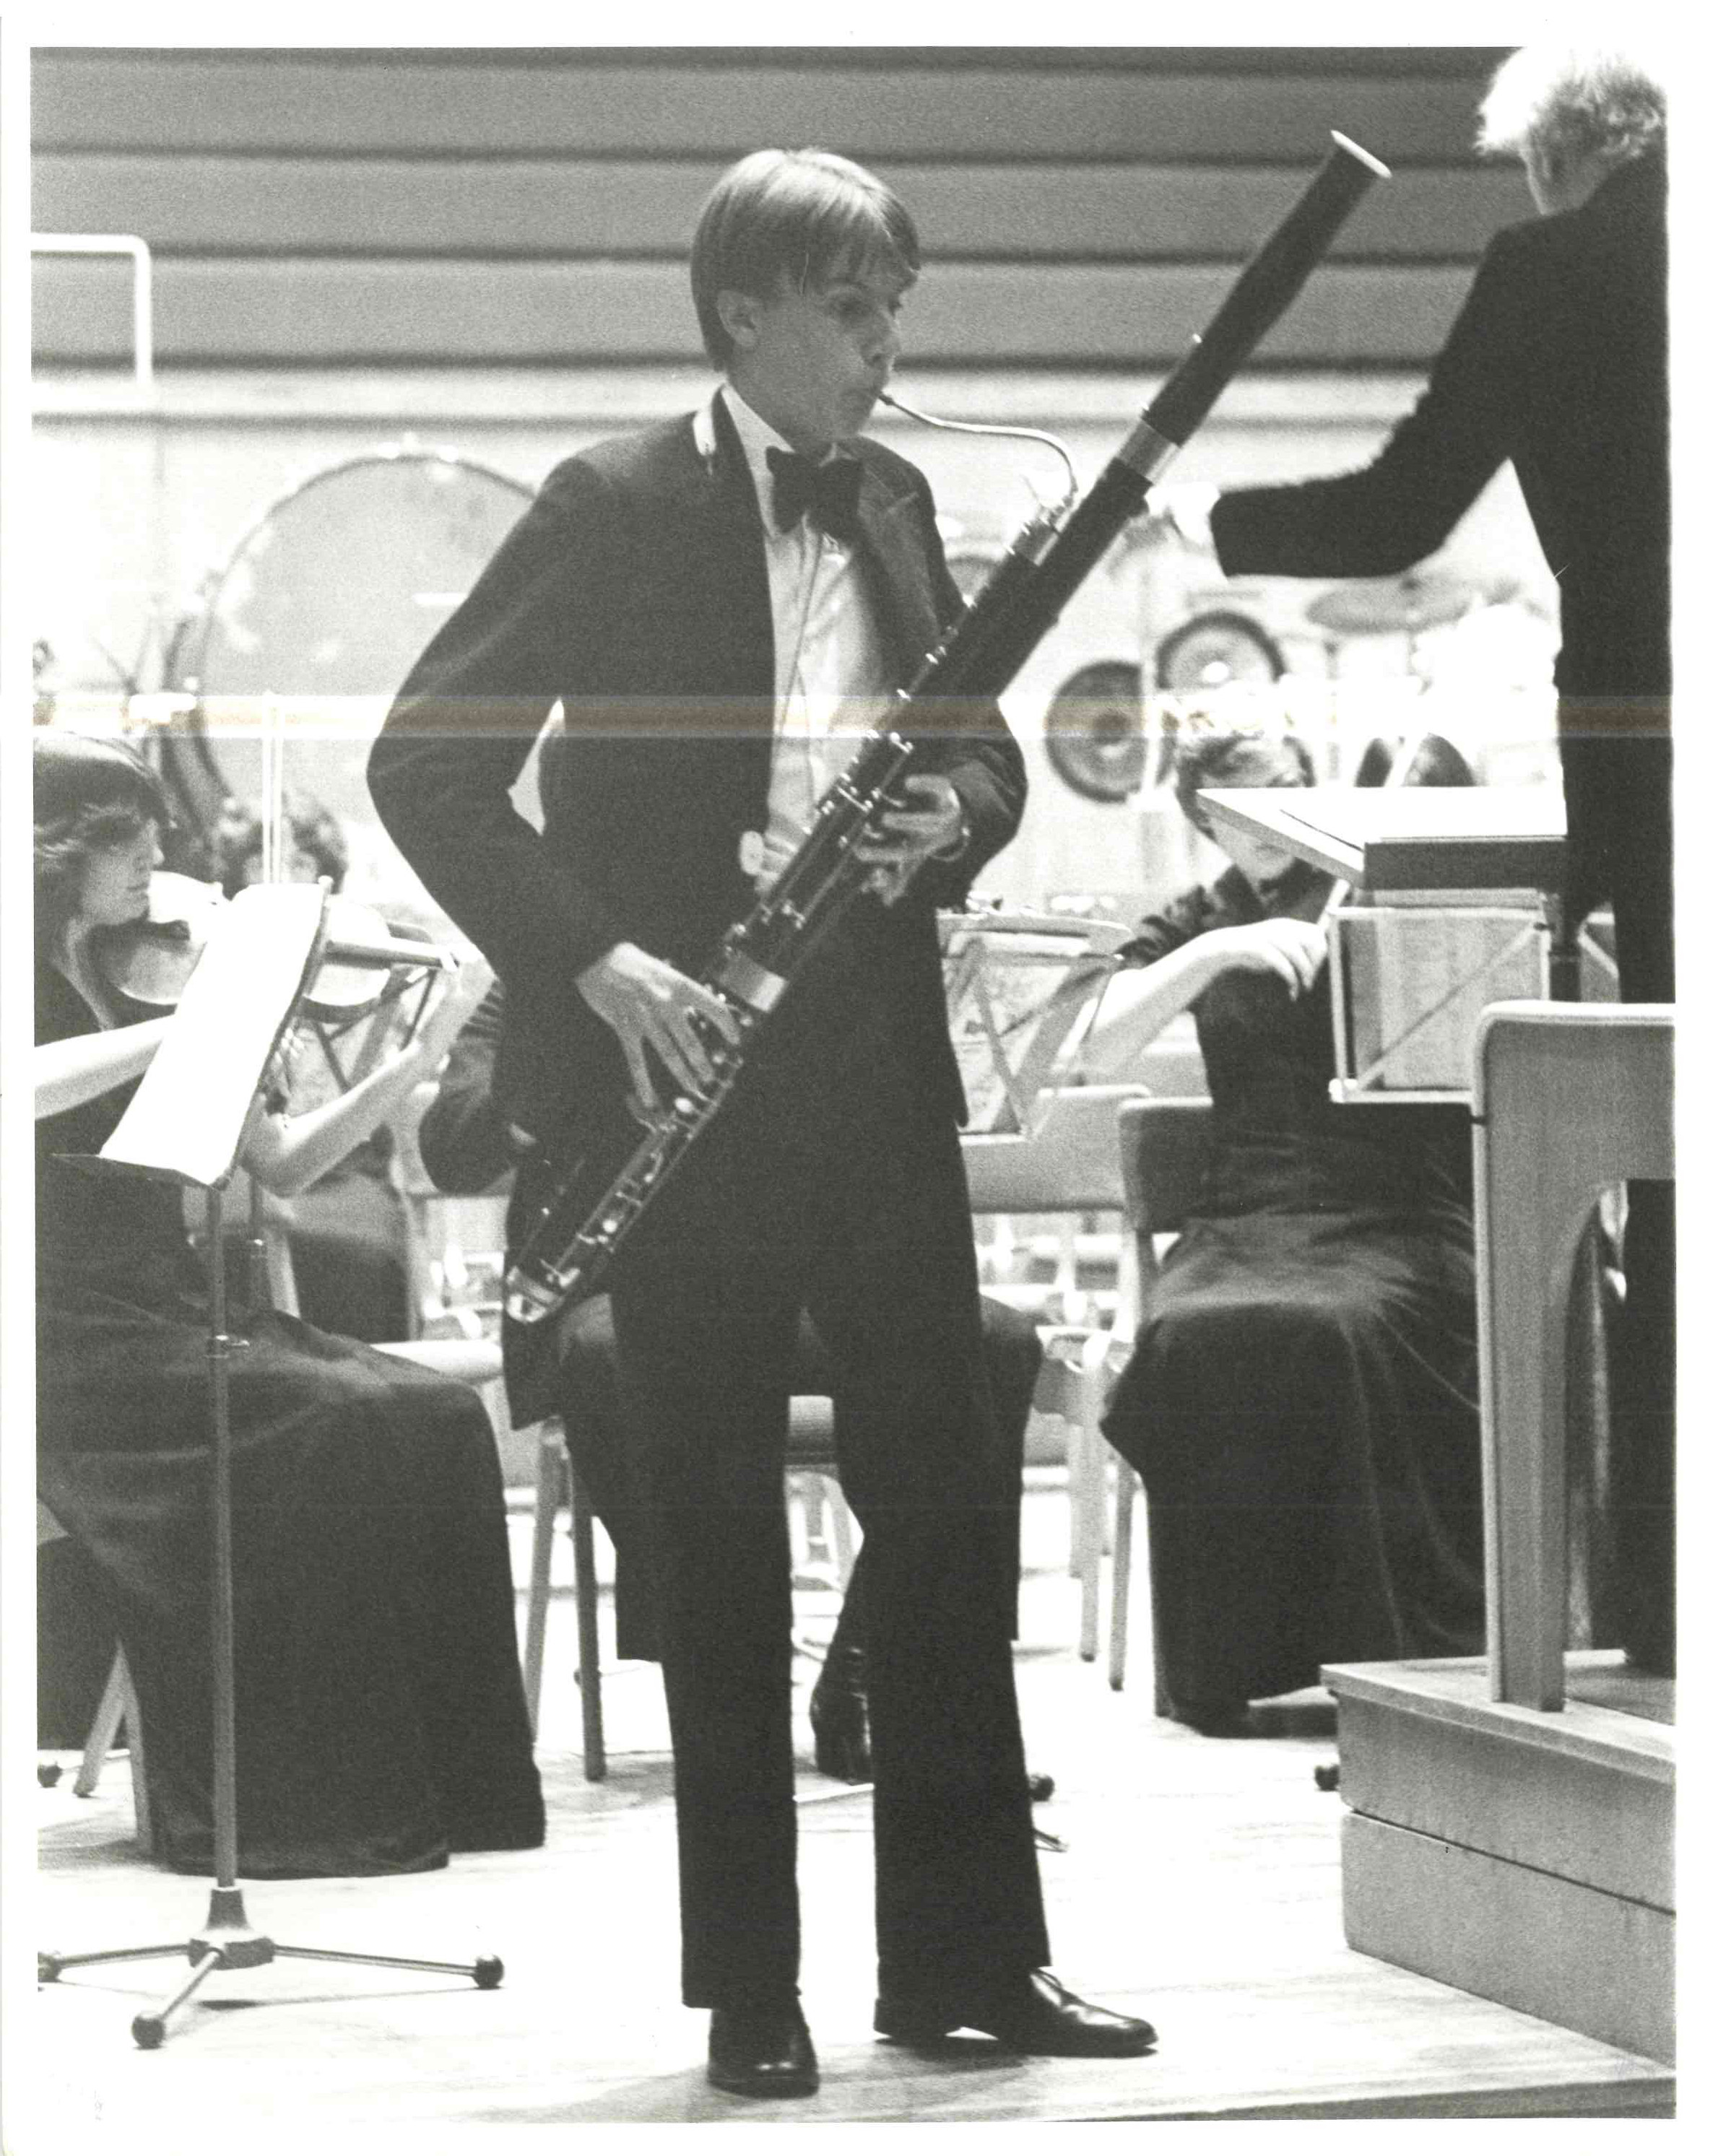 00509-Misc. Photos BYO - Bassoon Soloist.jpg